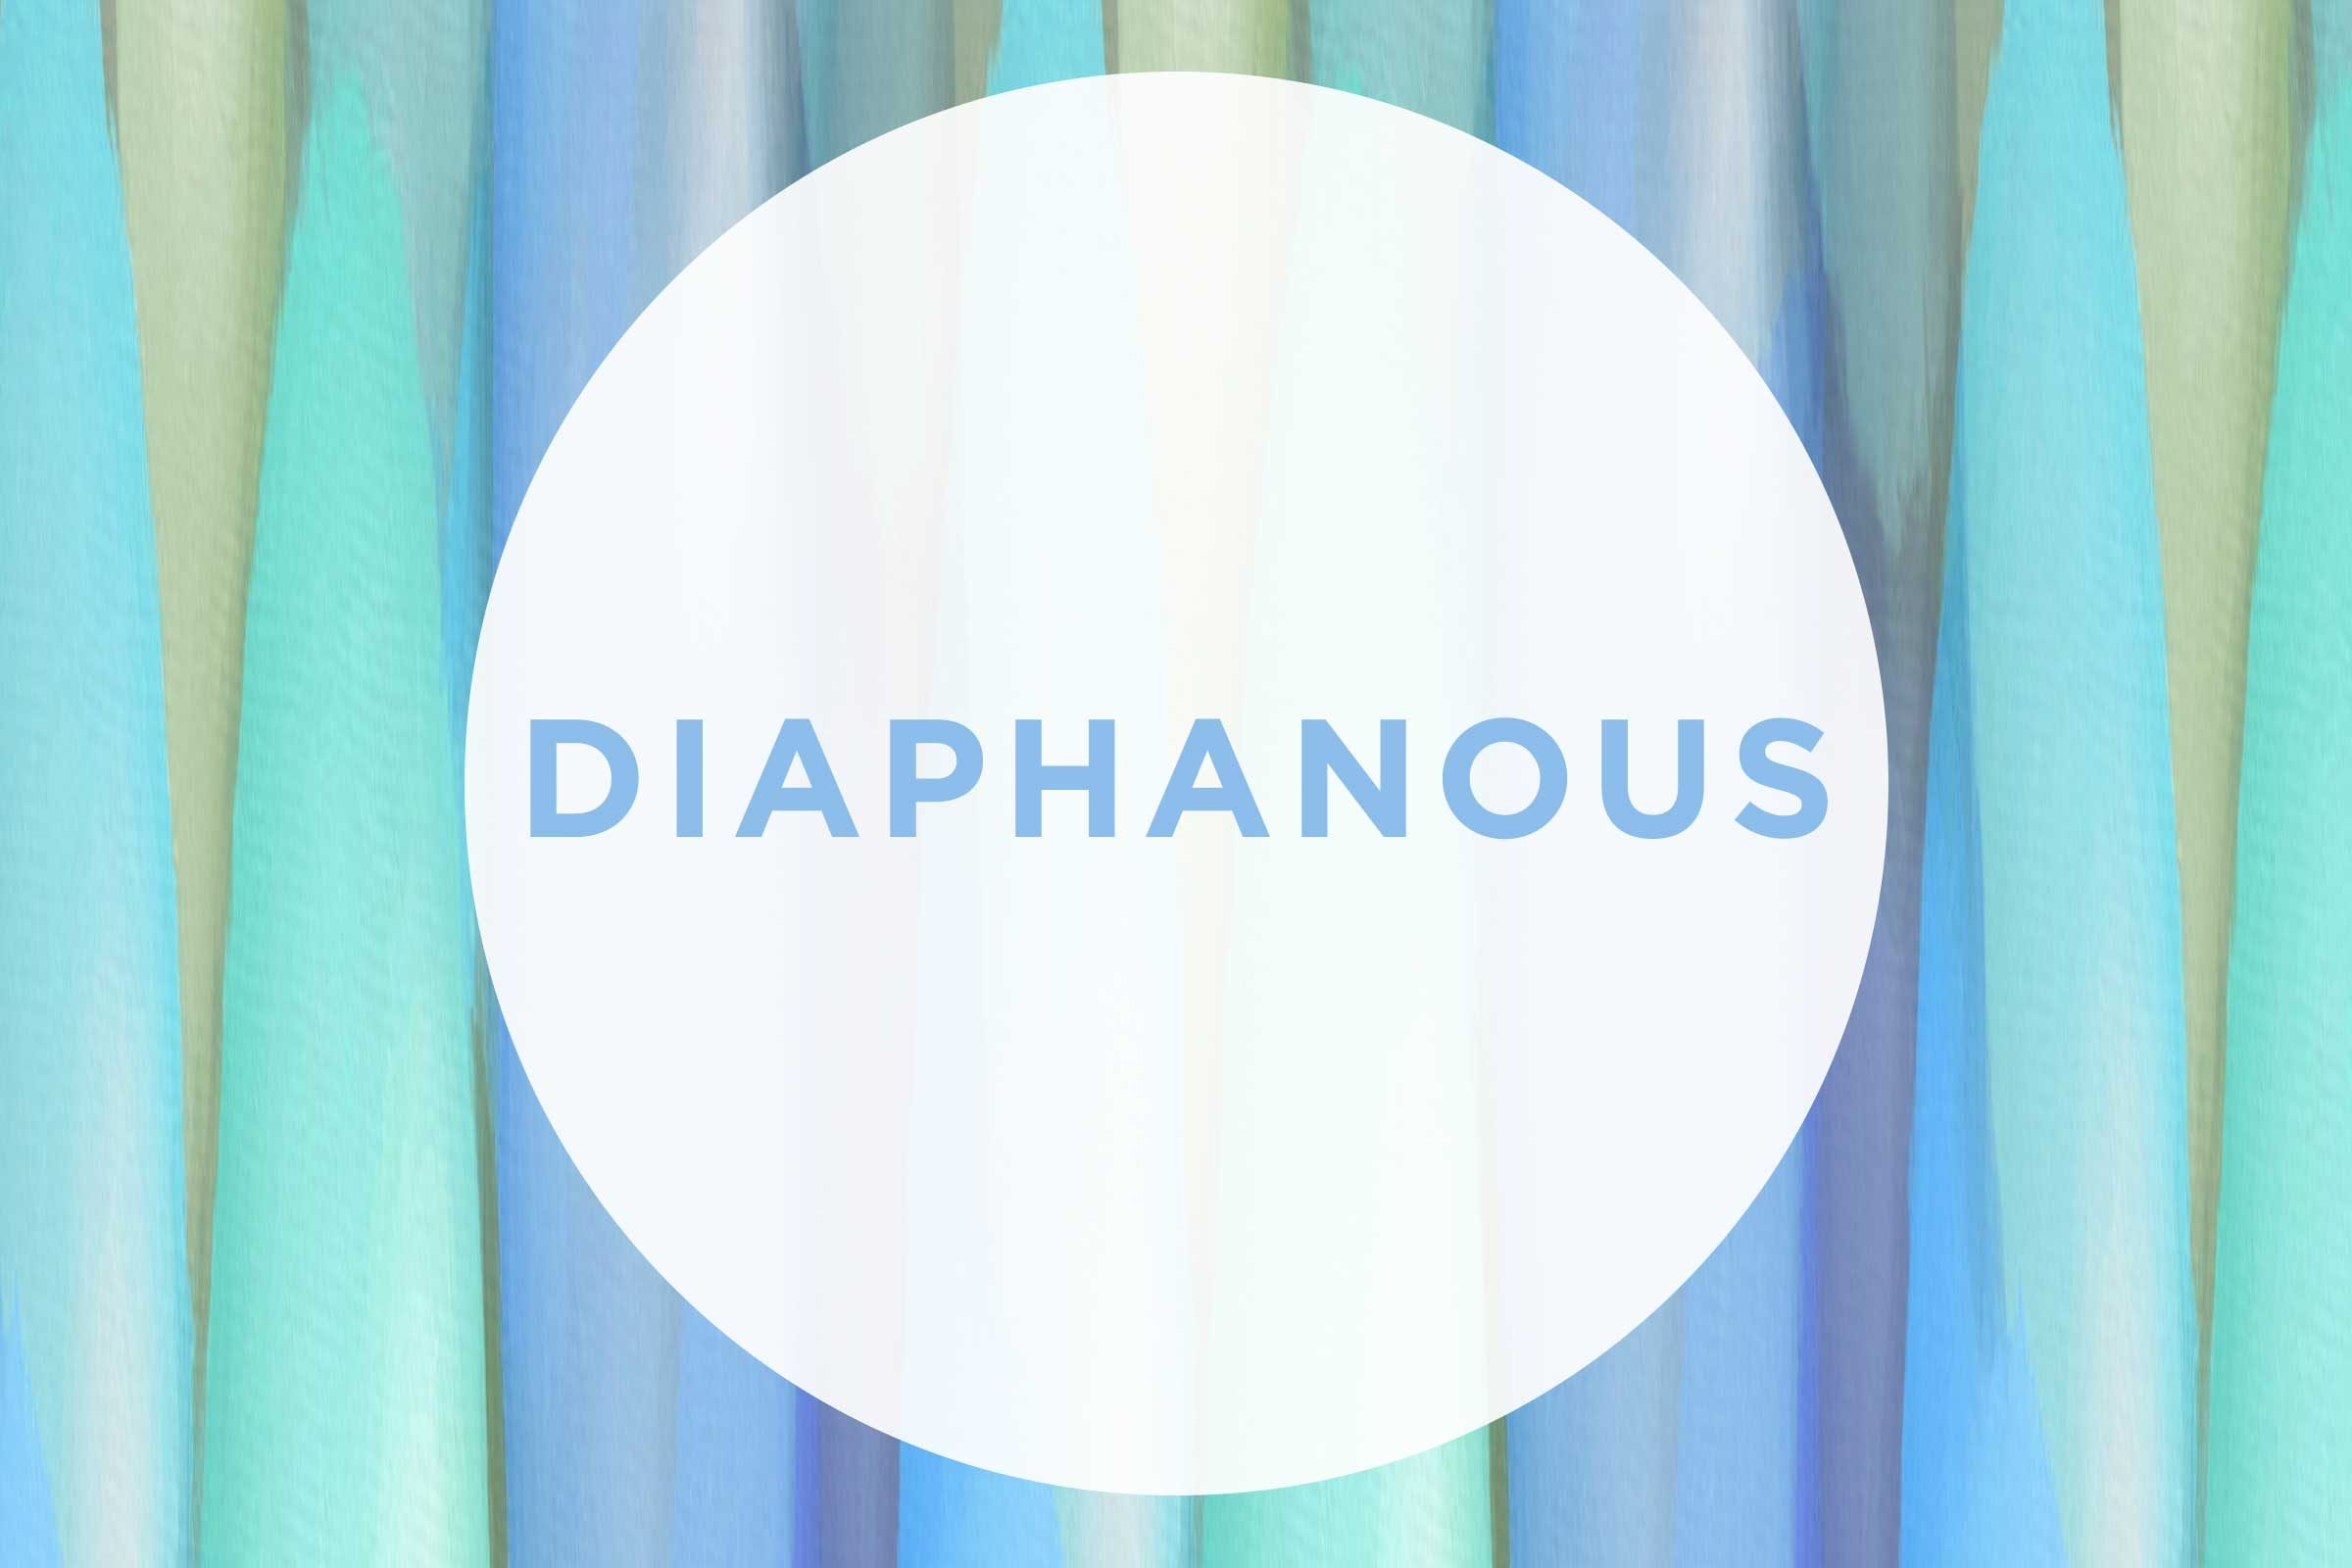 beautiful words comeback Diaphanous